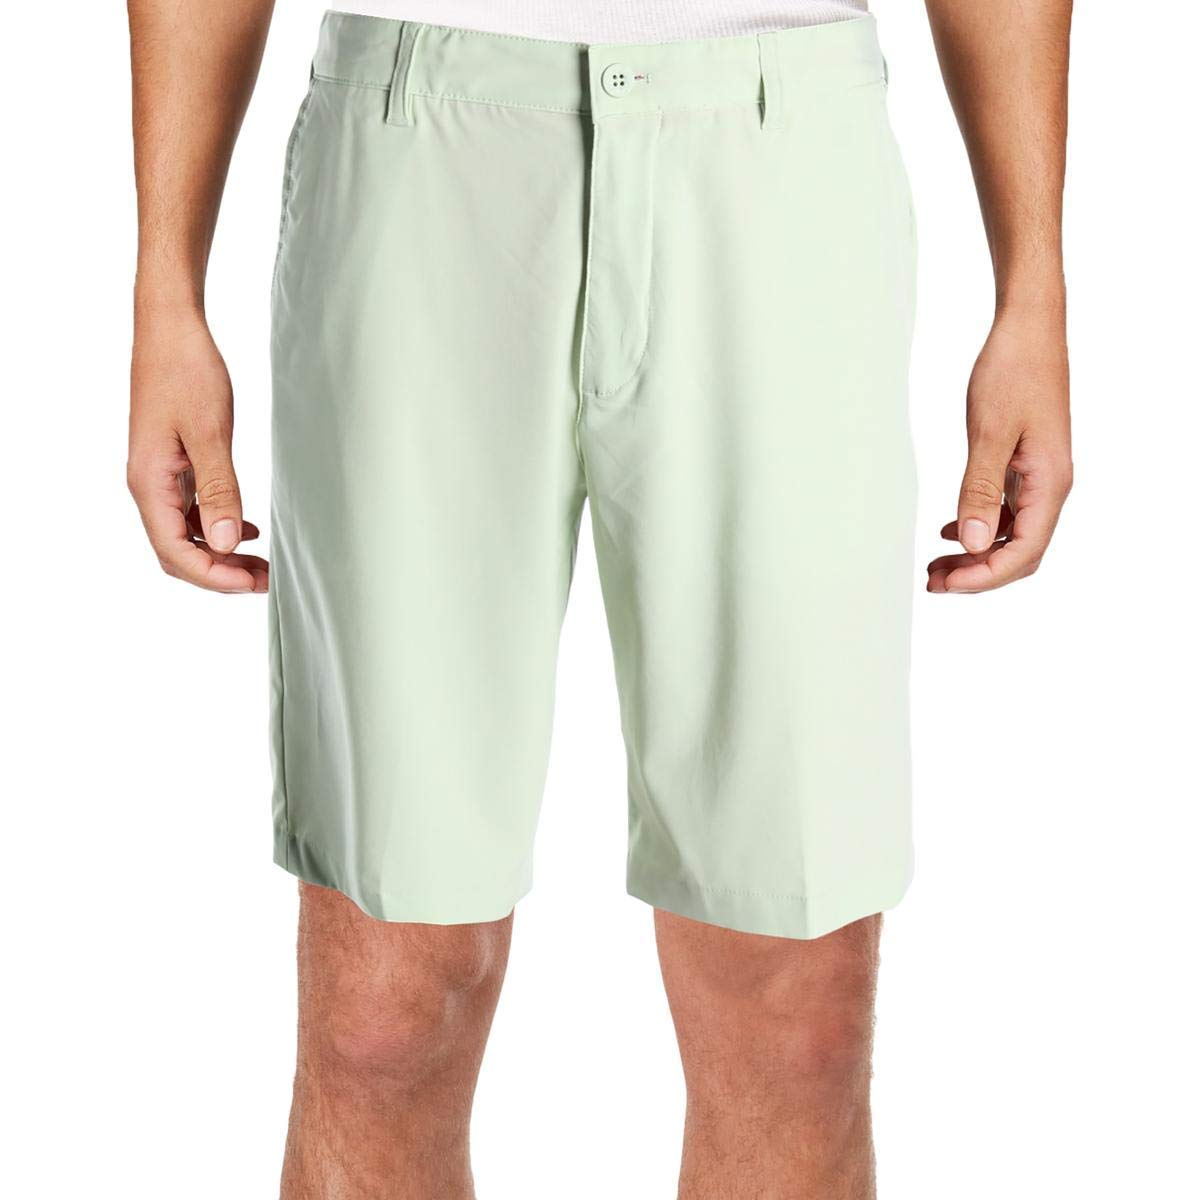 a507a99afb Cheap Izod Golf Shorts, find Izod Golf Shorts deals on line at ...